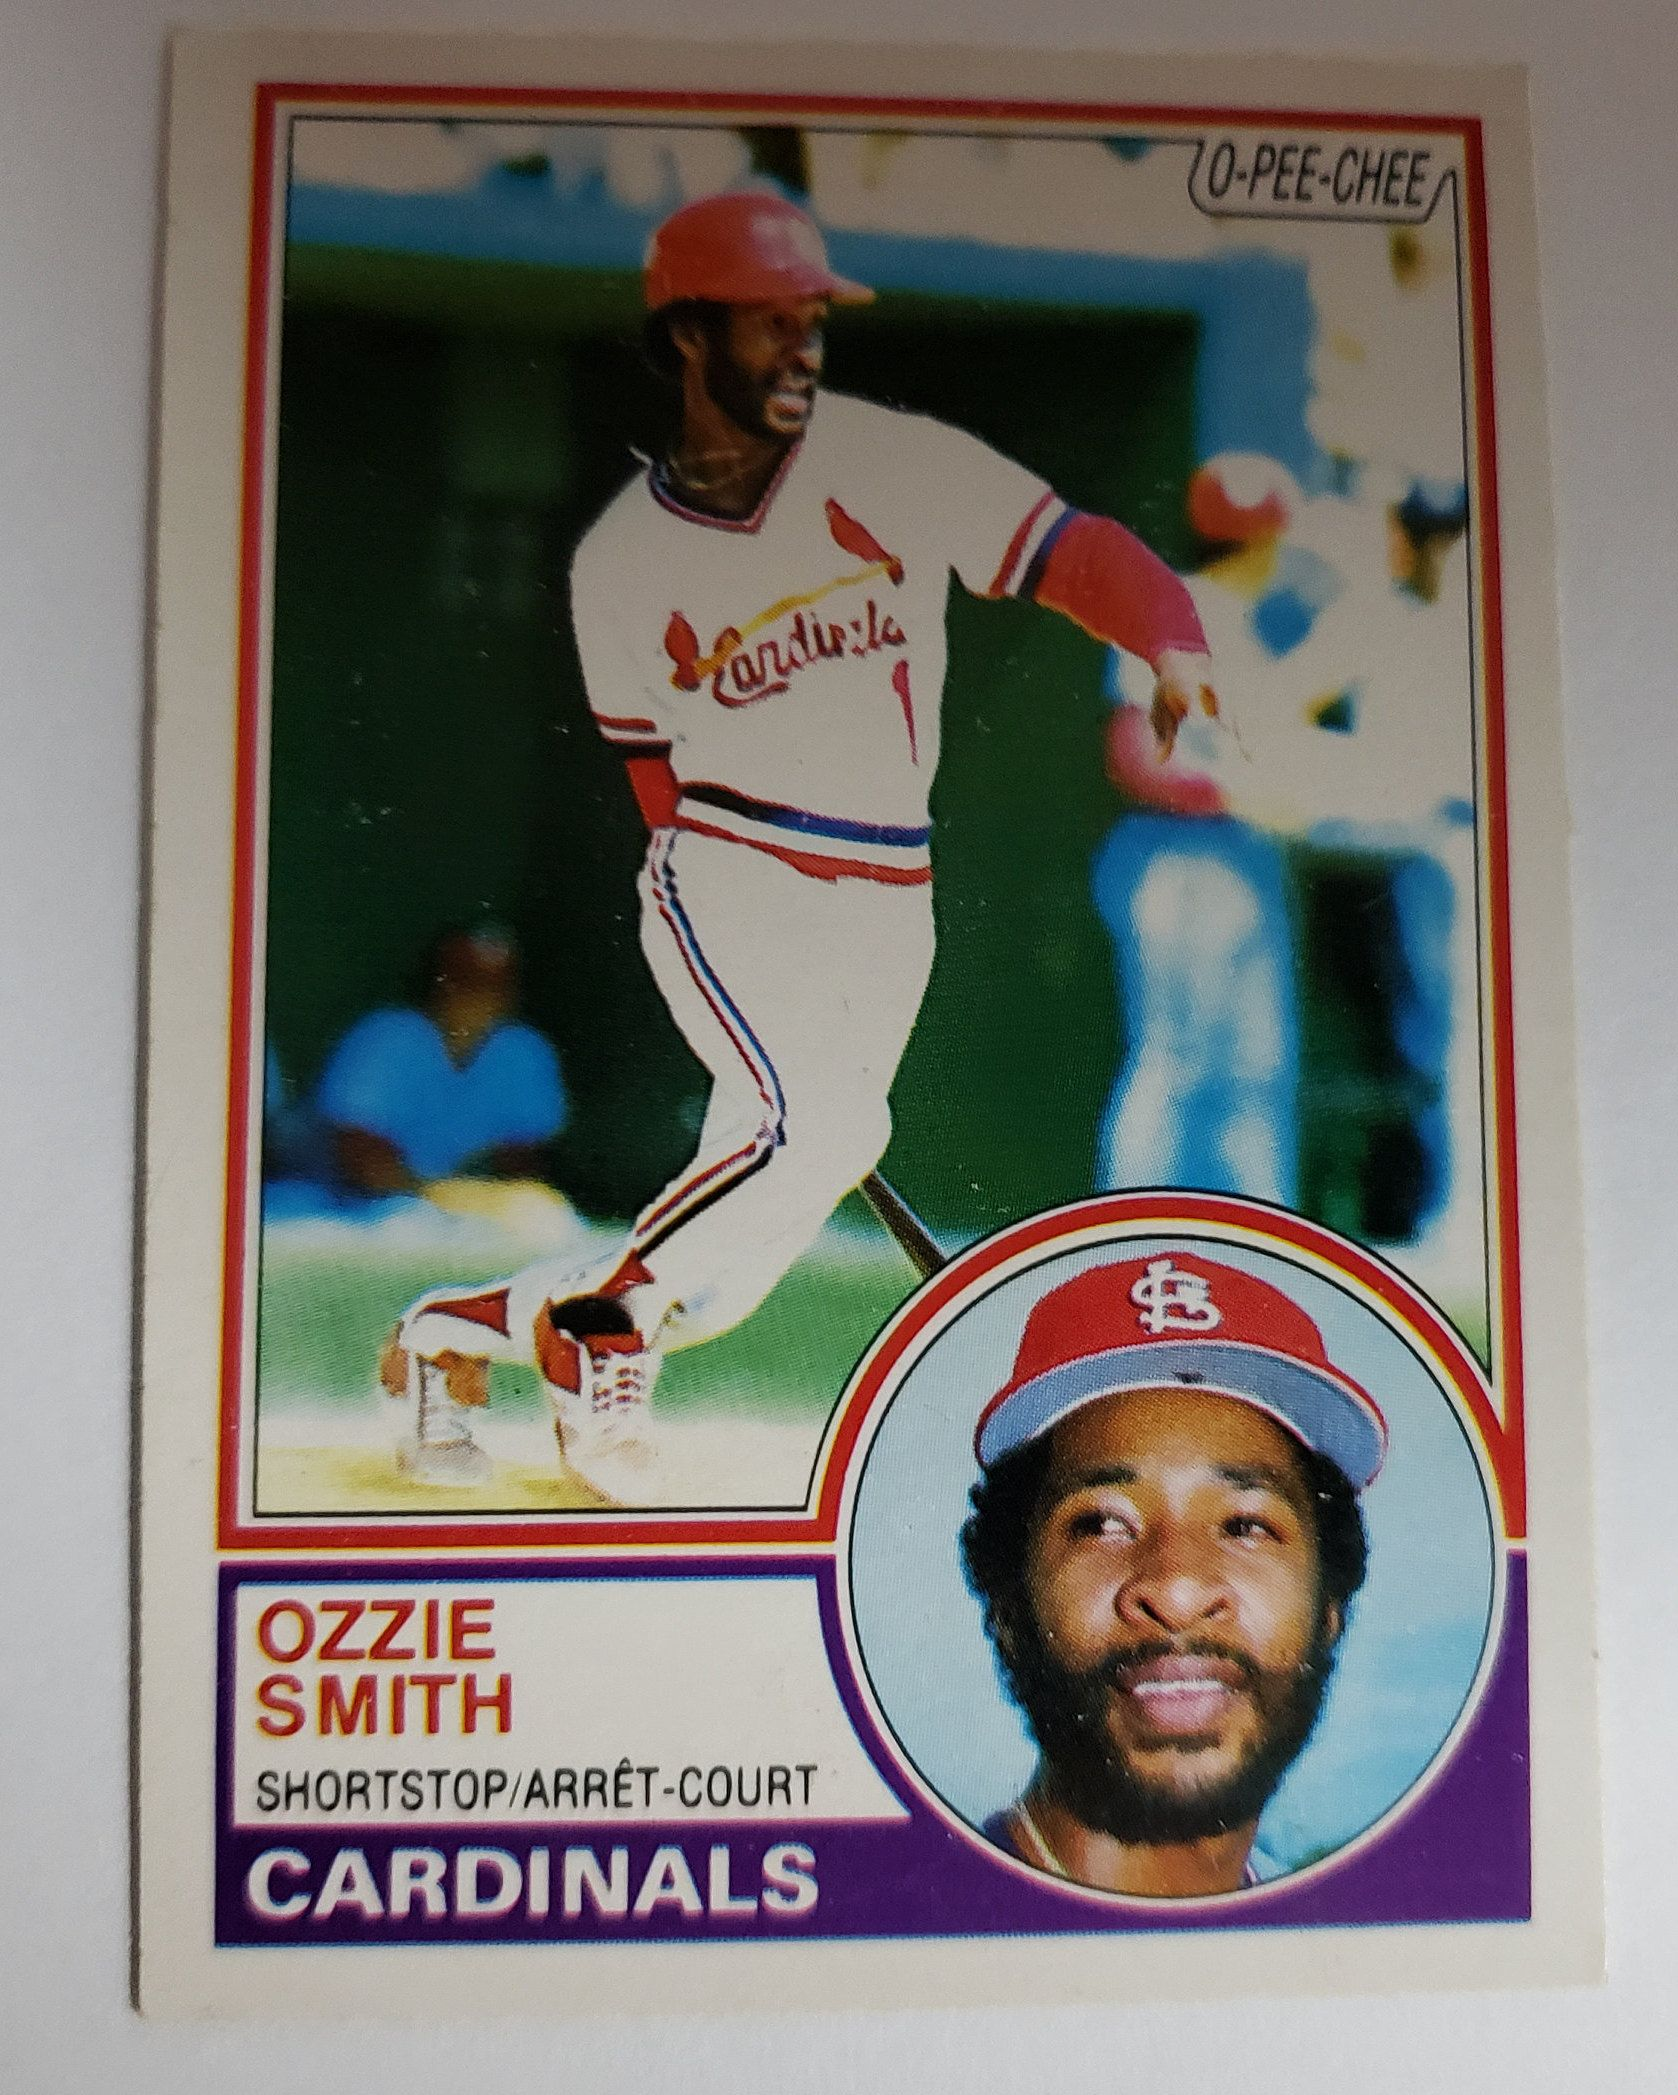 1983 opeechee ozzie smith 14 in 2020 chees cool